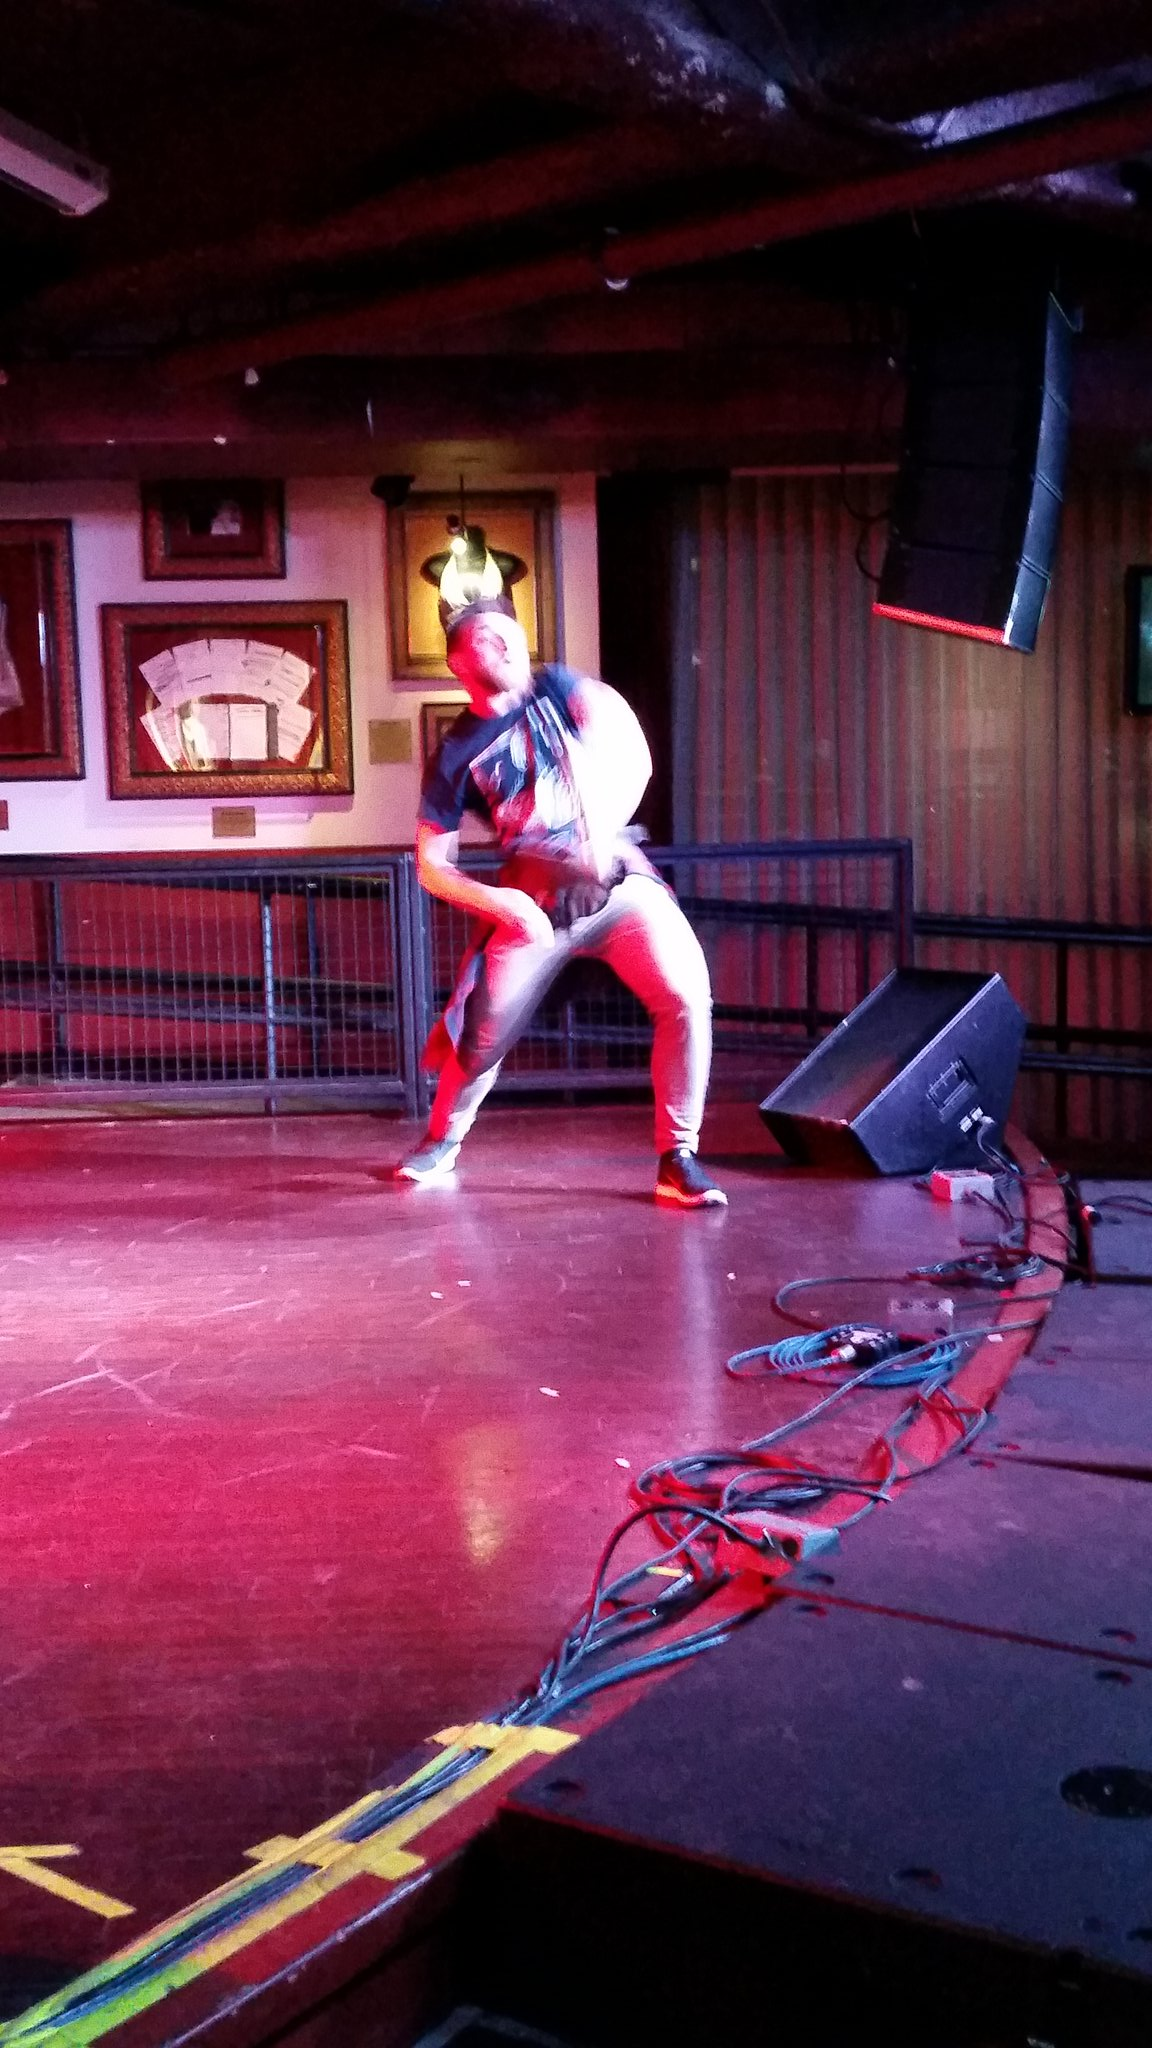 This dude is a walk on and did a great job frankly. #usairguitar https://t.co/8byC2EKVwv